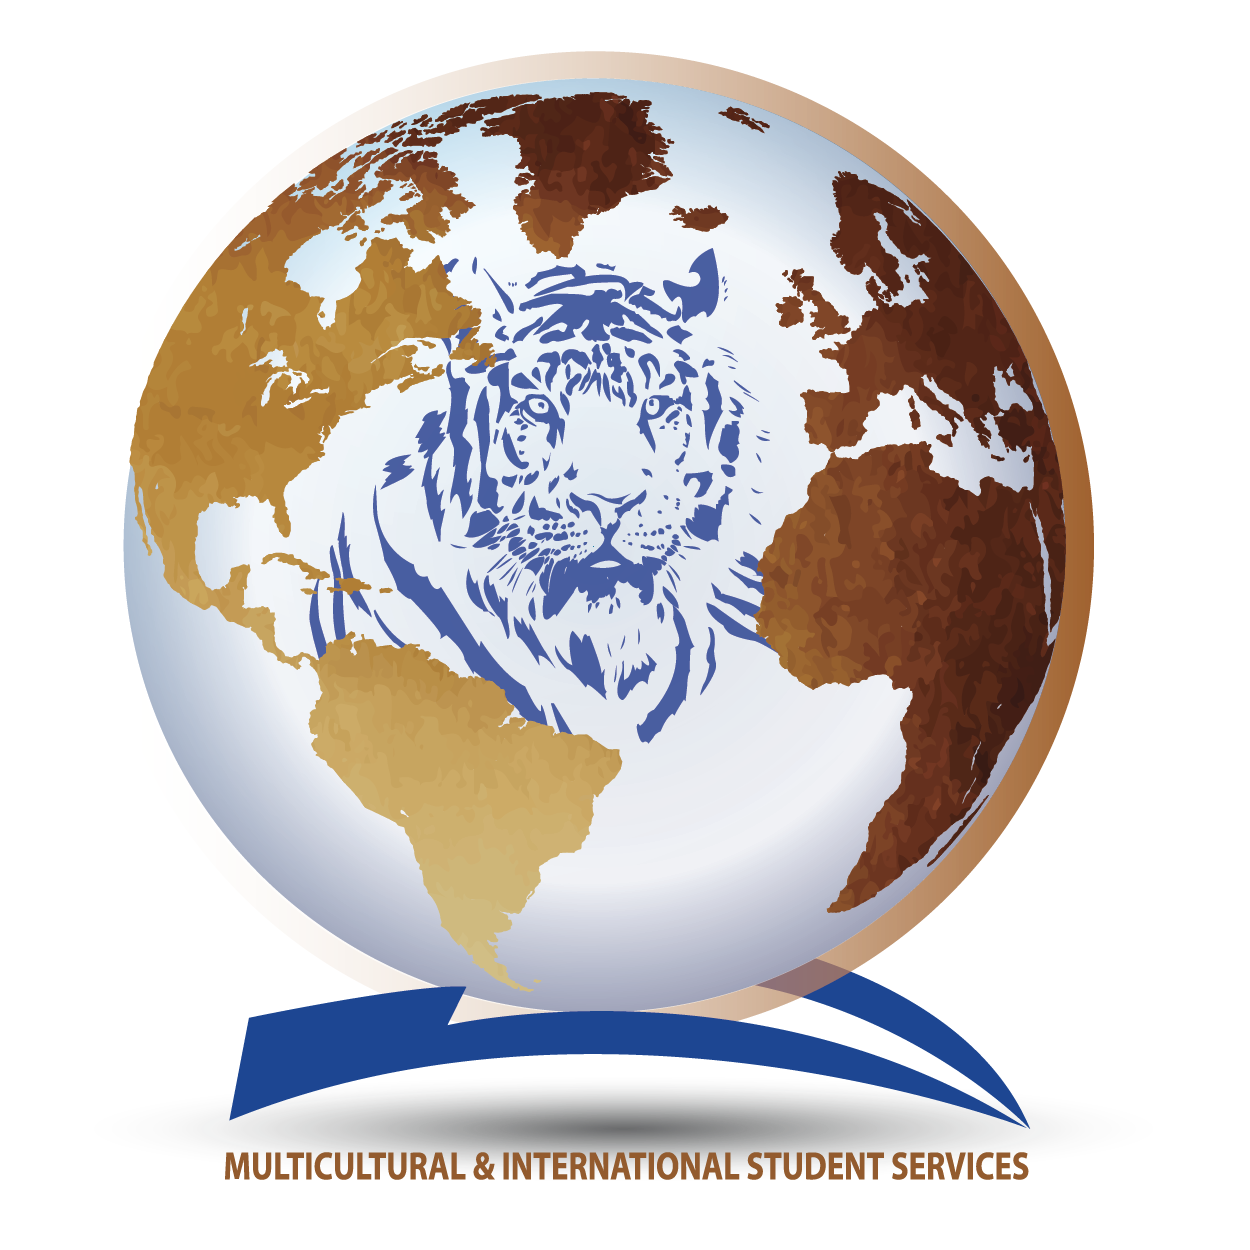 Multicultural & International Student Services